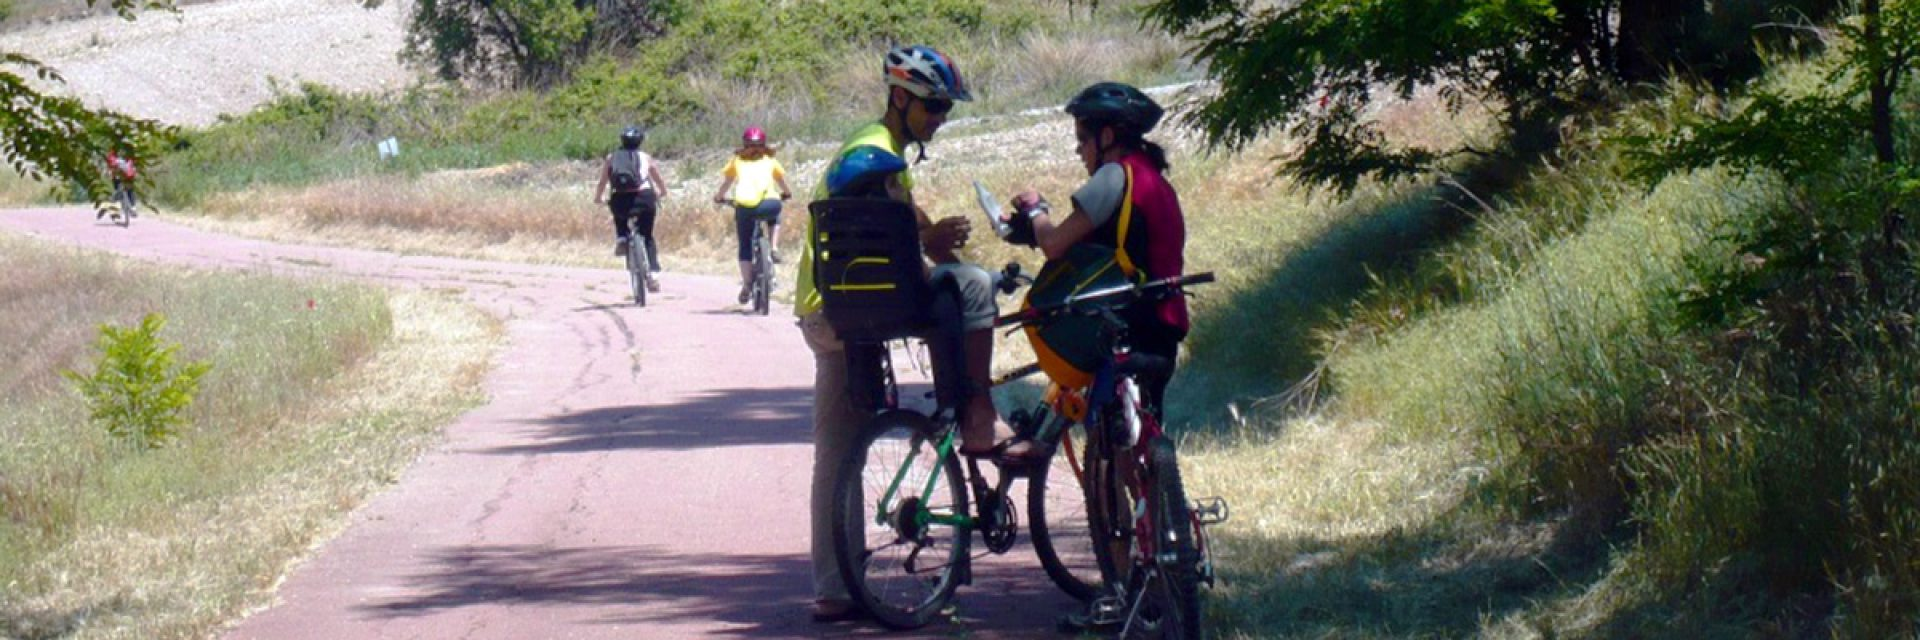 Enjoy greenways by bike with childrens!